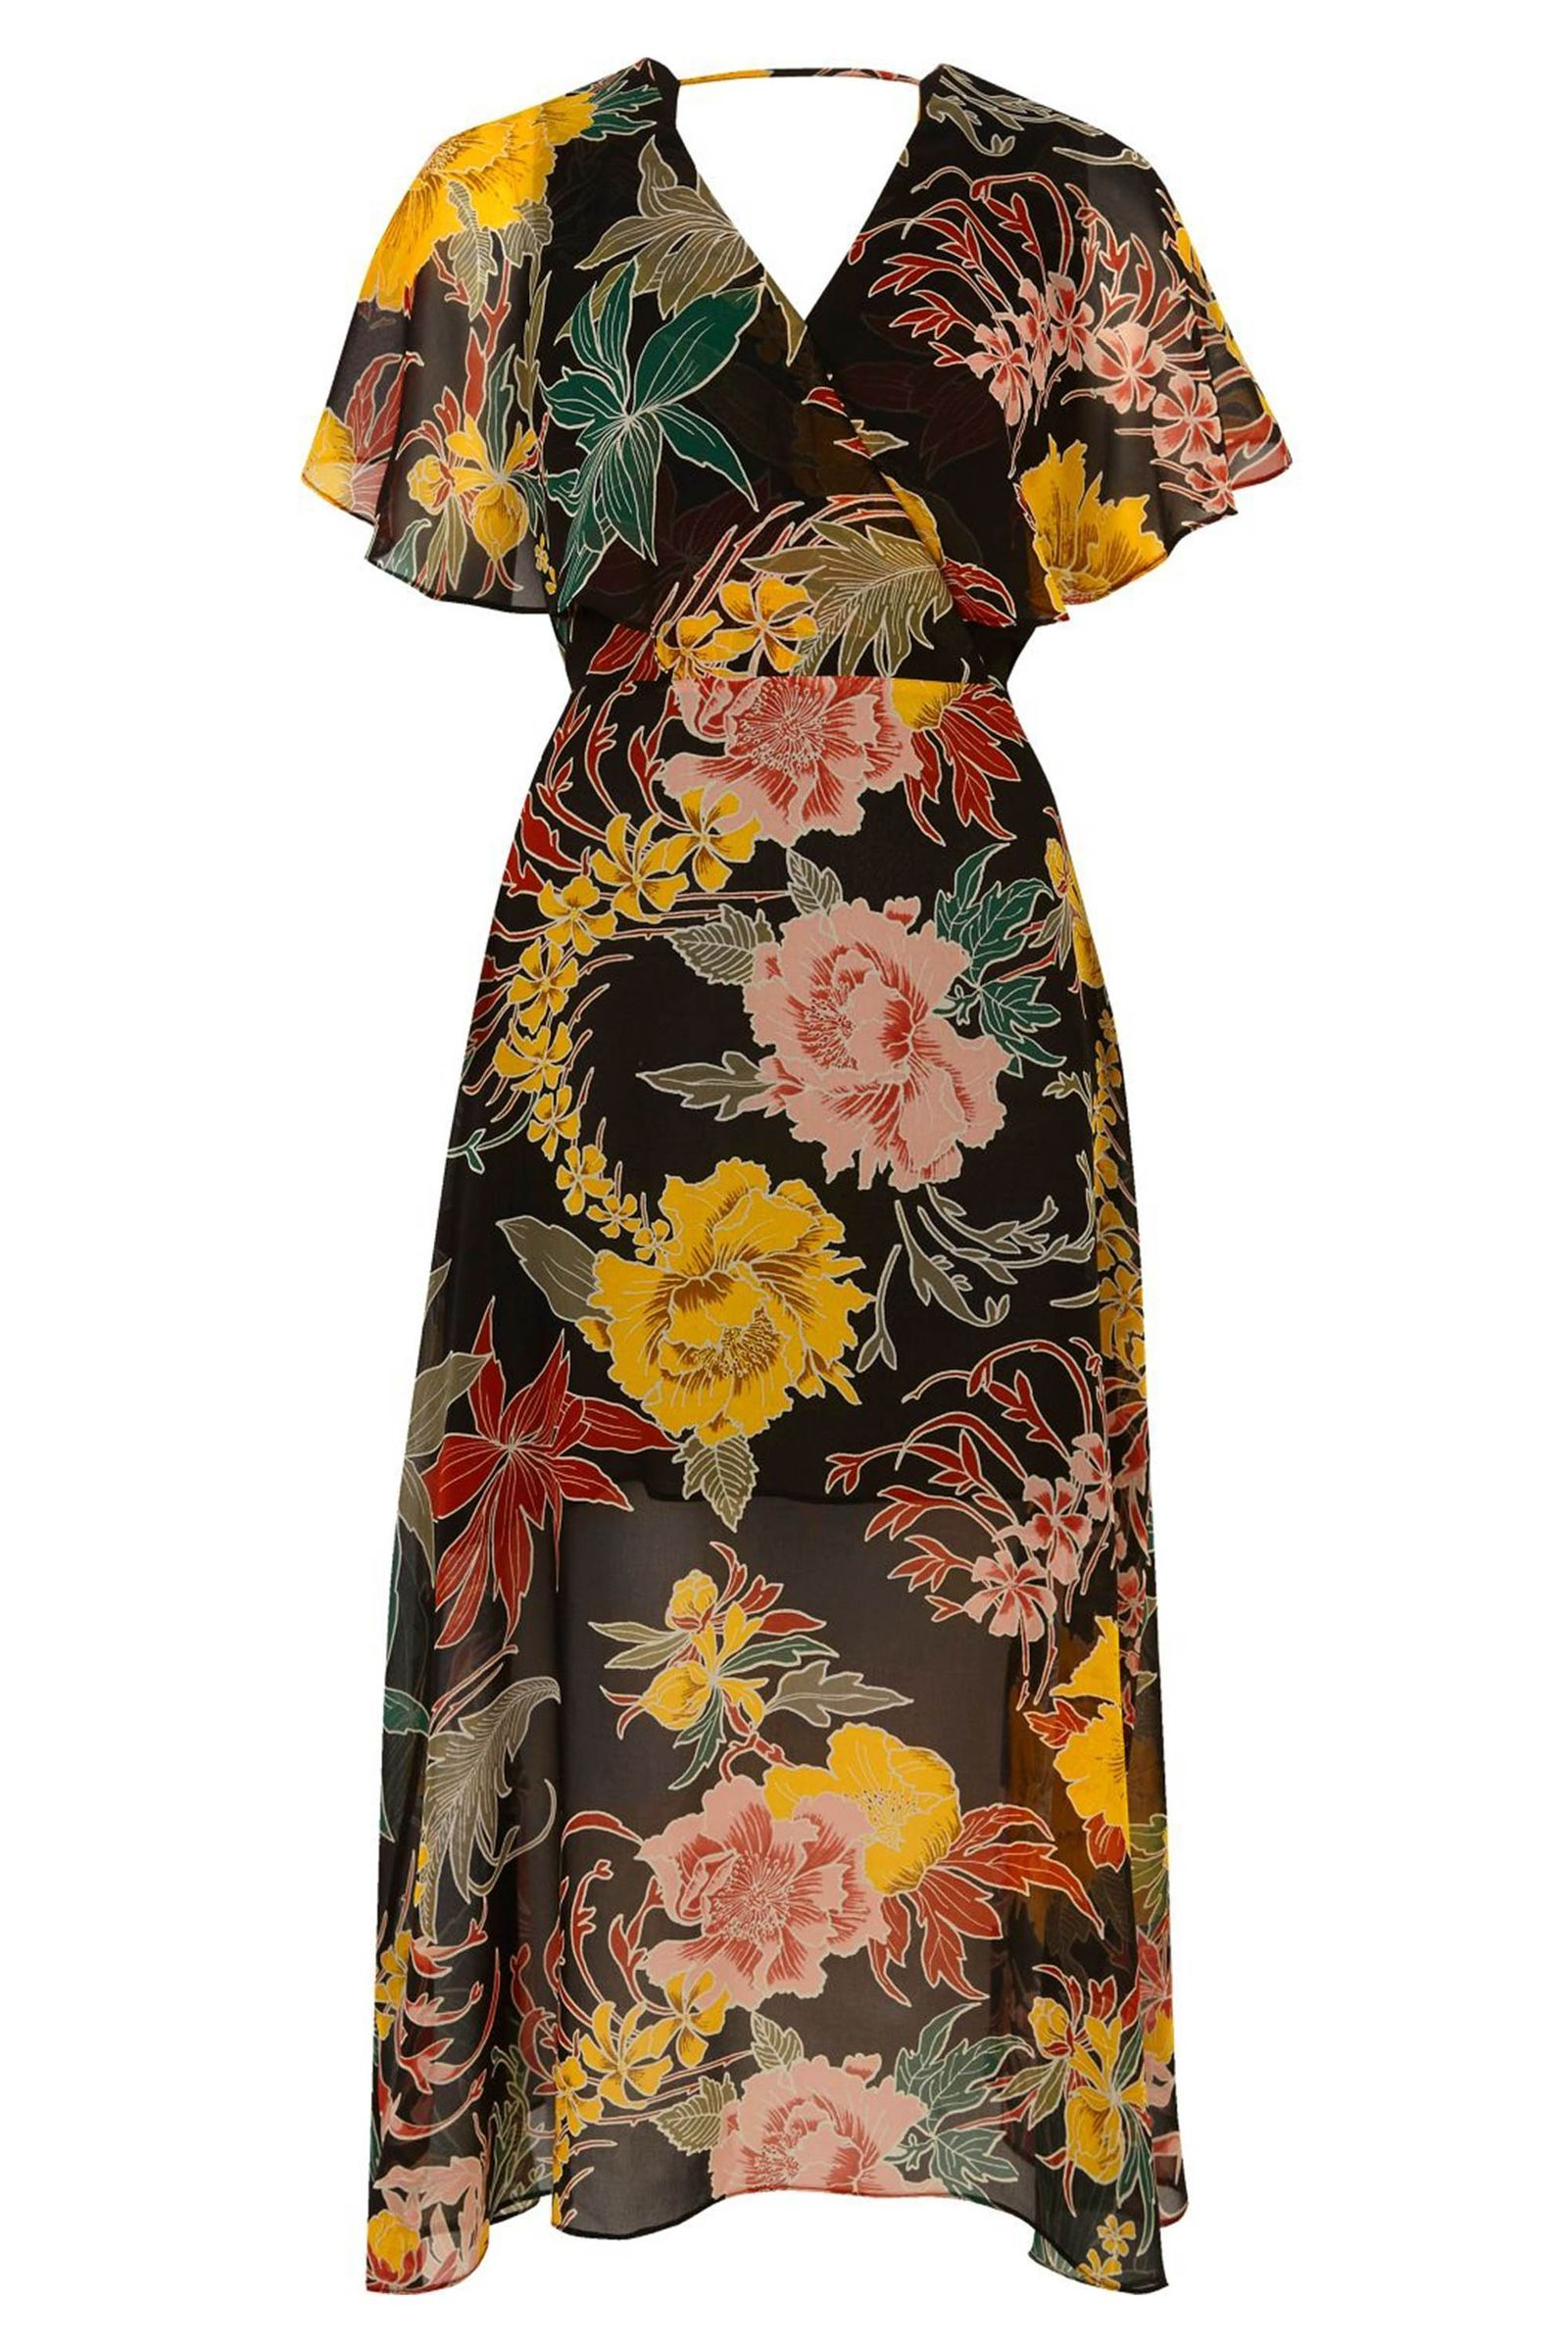 Dresses to wear to a fall wedding for a guest   Dresses to Wear to a Winter Wedding  Winter weddings Winter